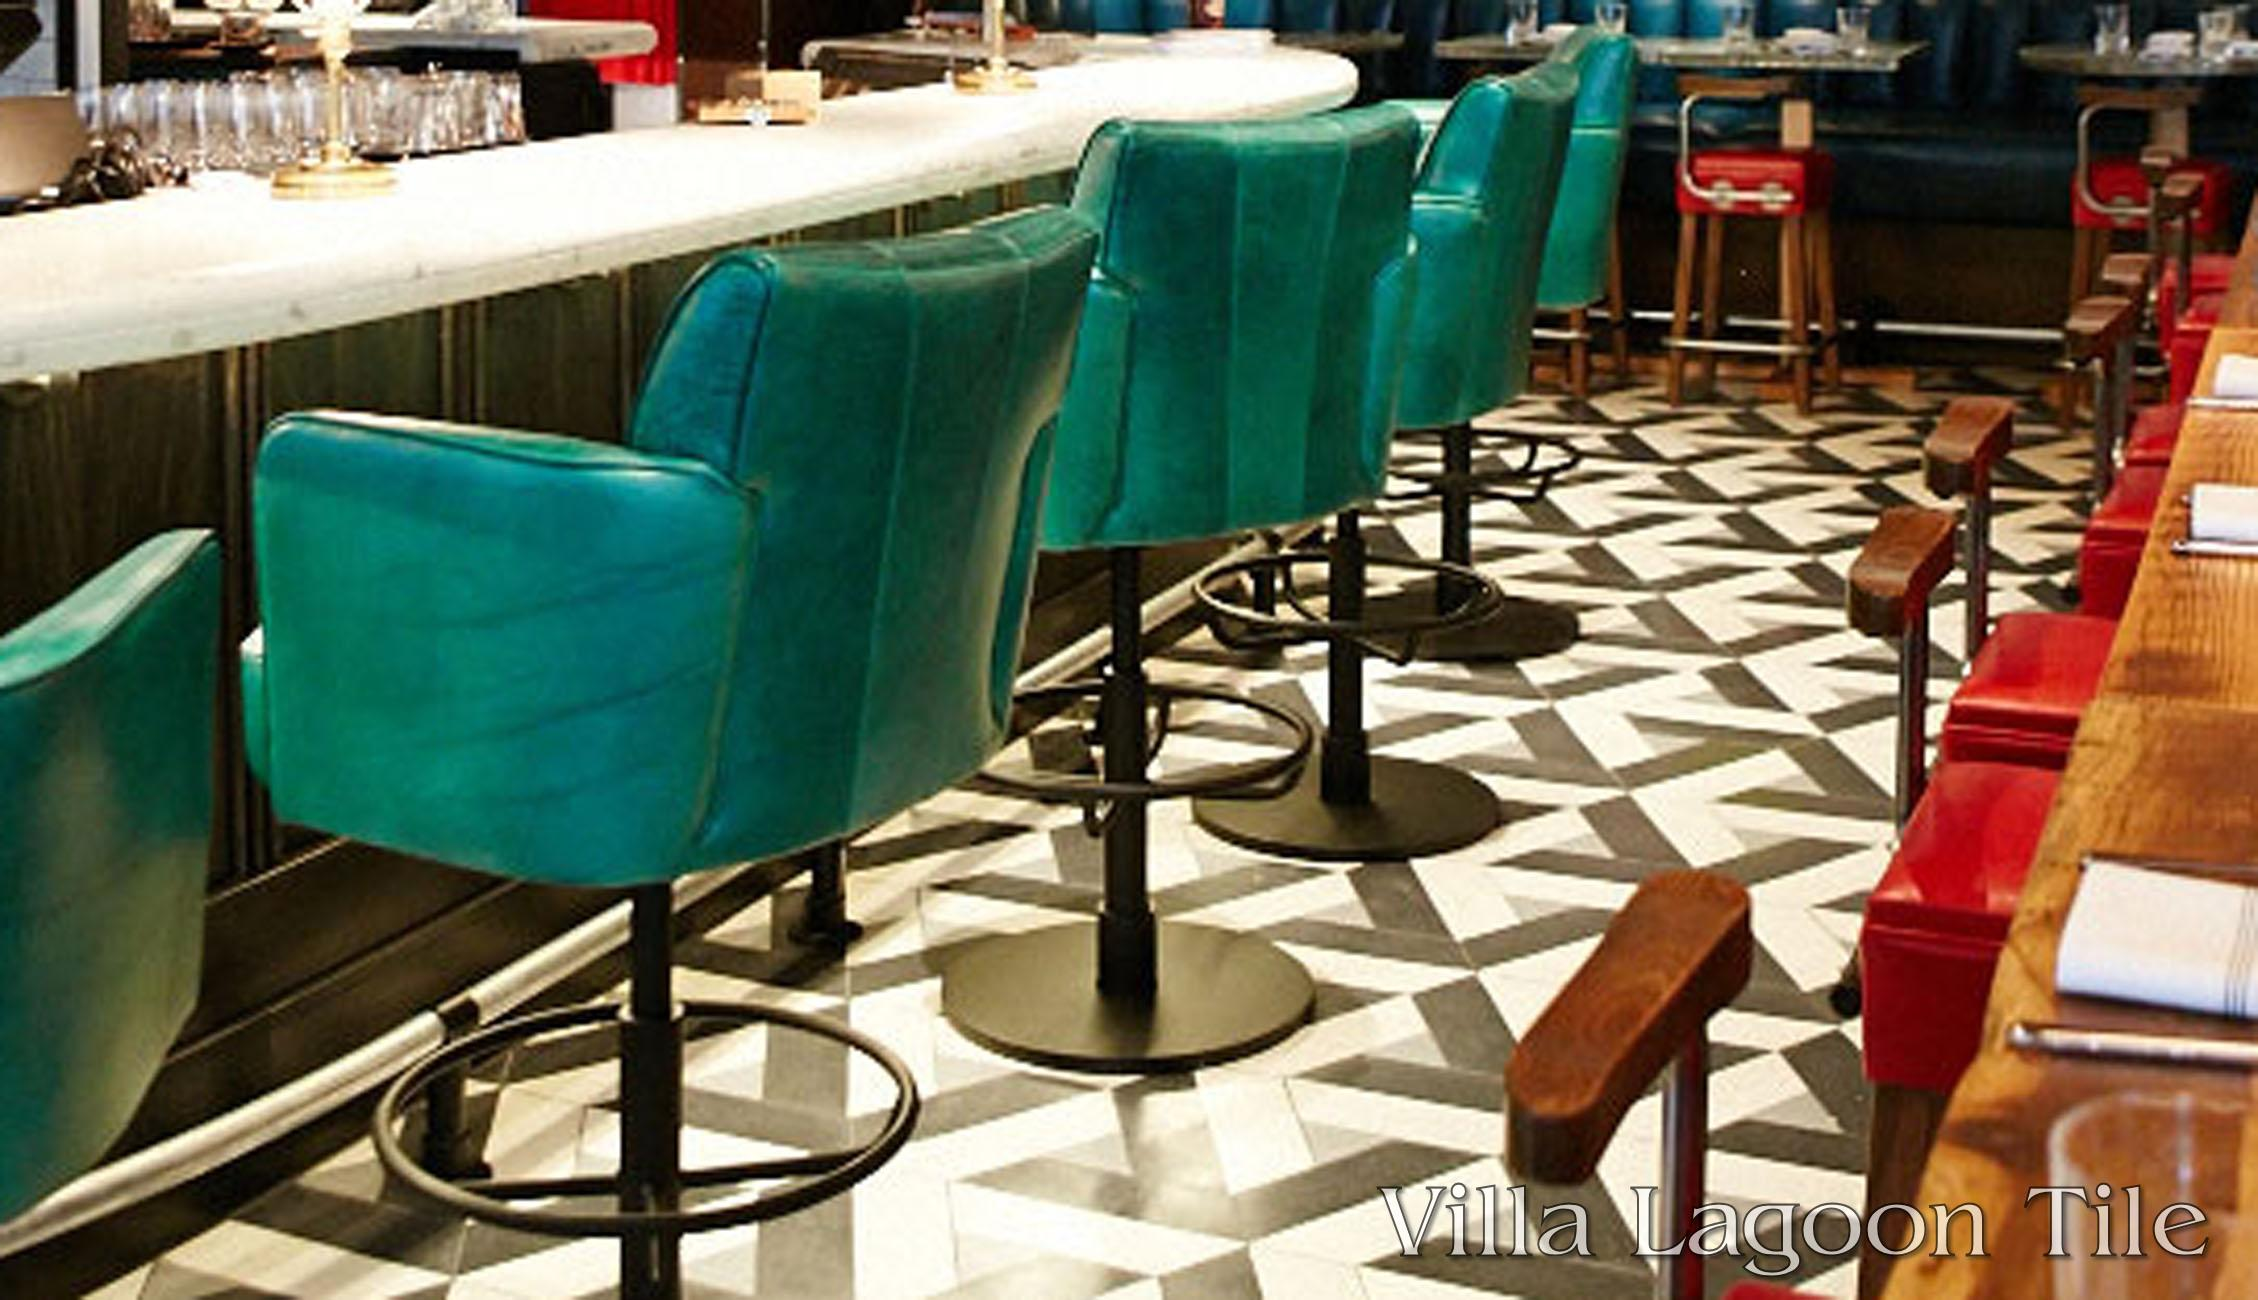 A toronto icon expands with custom cement tile cement style a portion of the marble bar and custom cement tile floor of the drake one fifty dailygadgetfo Choice Image